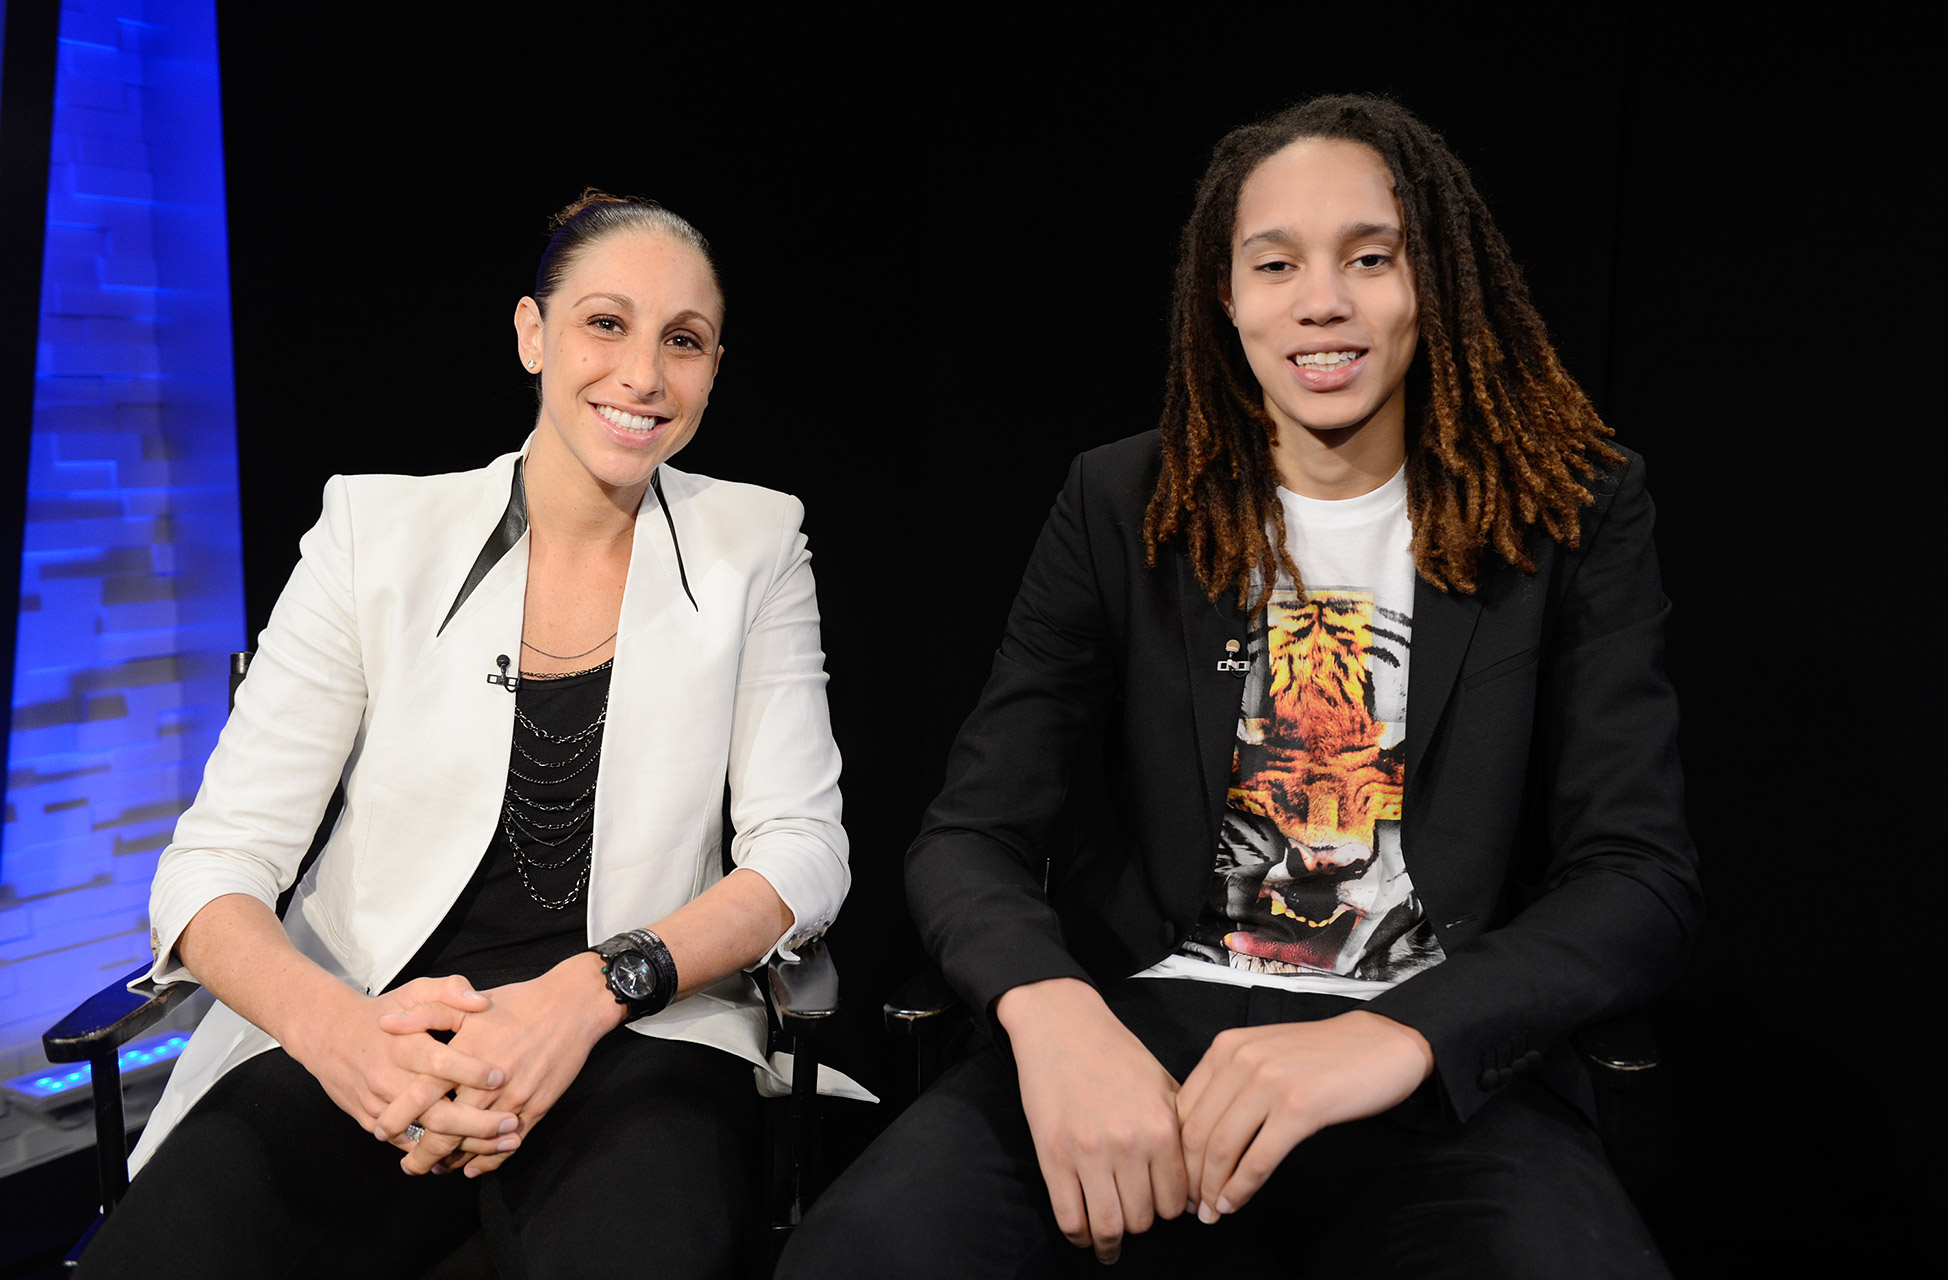 Pursuing Perfection: Diana Taurasi and Brittney Griner